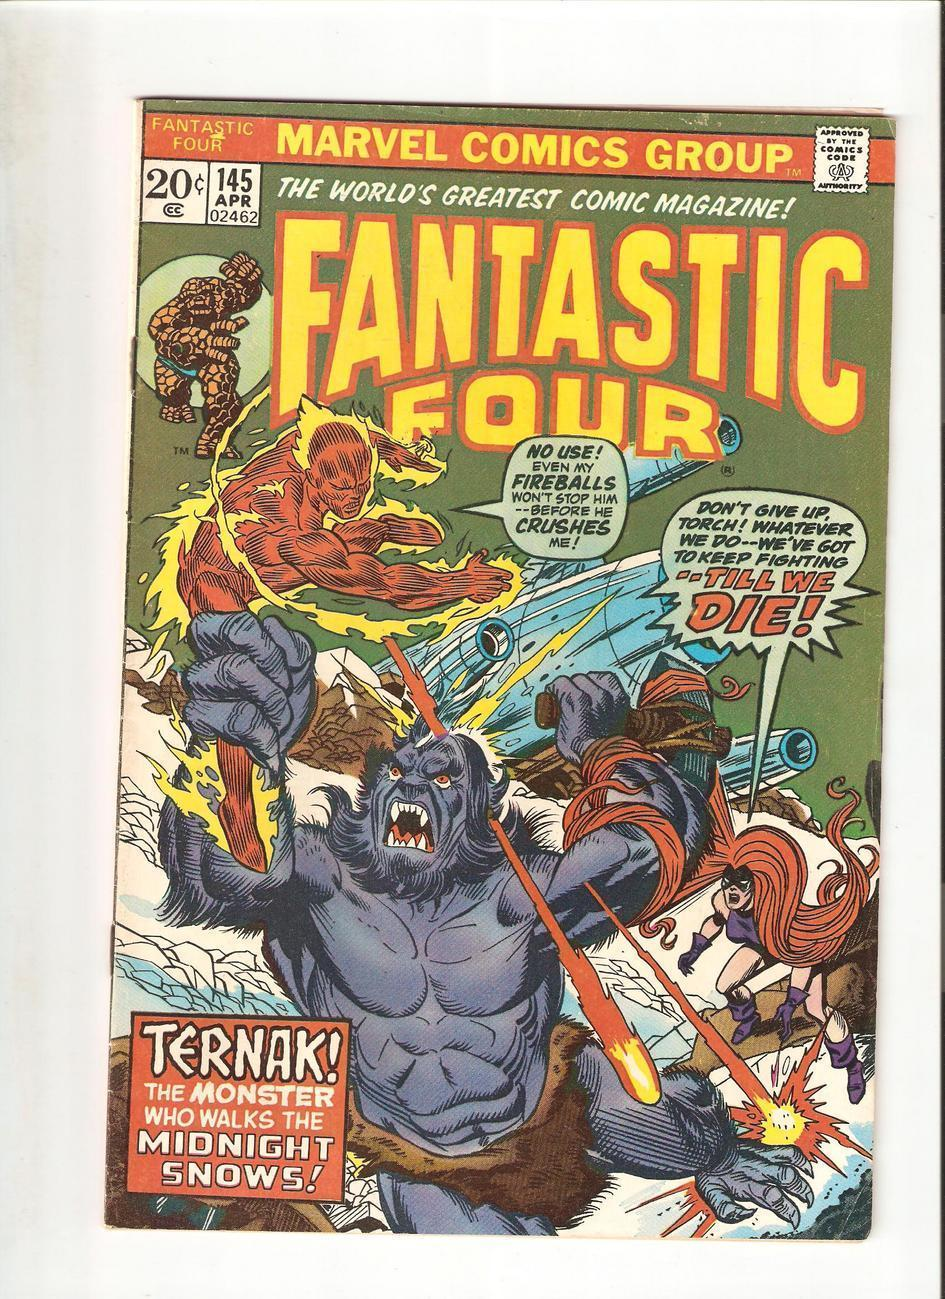 Marvel Comics - Fantastic Four # 145 (Apr.1974)